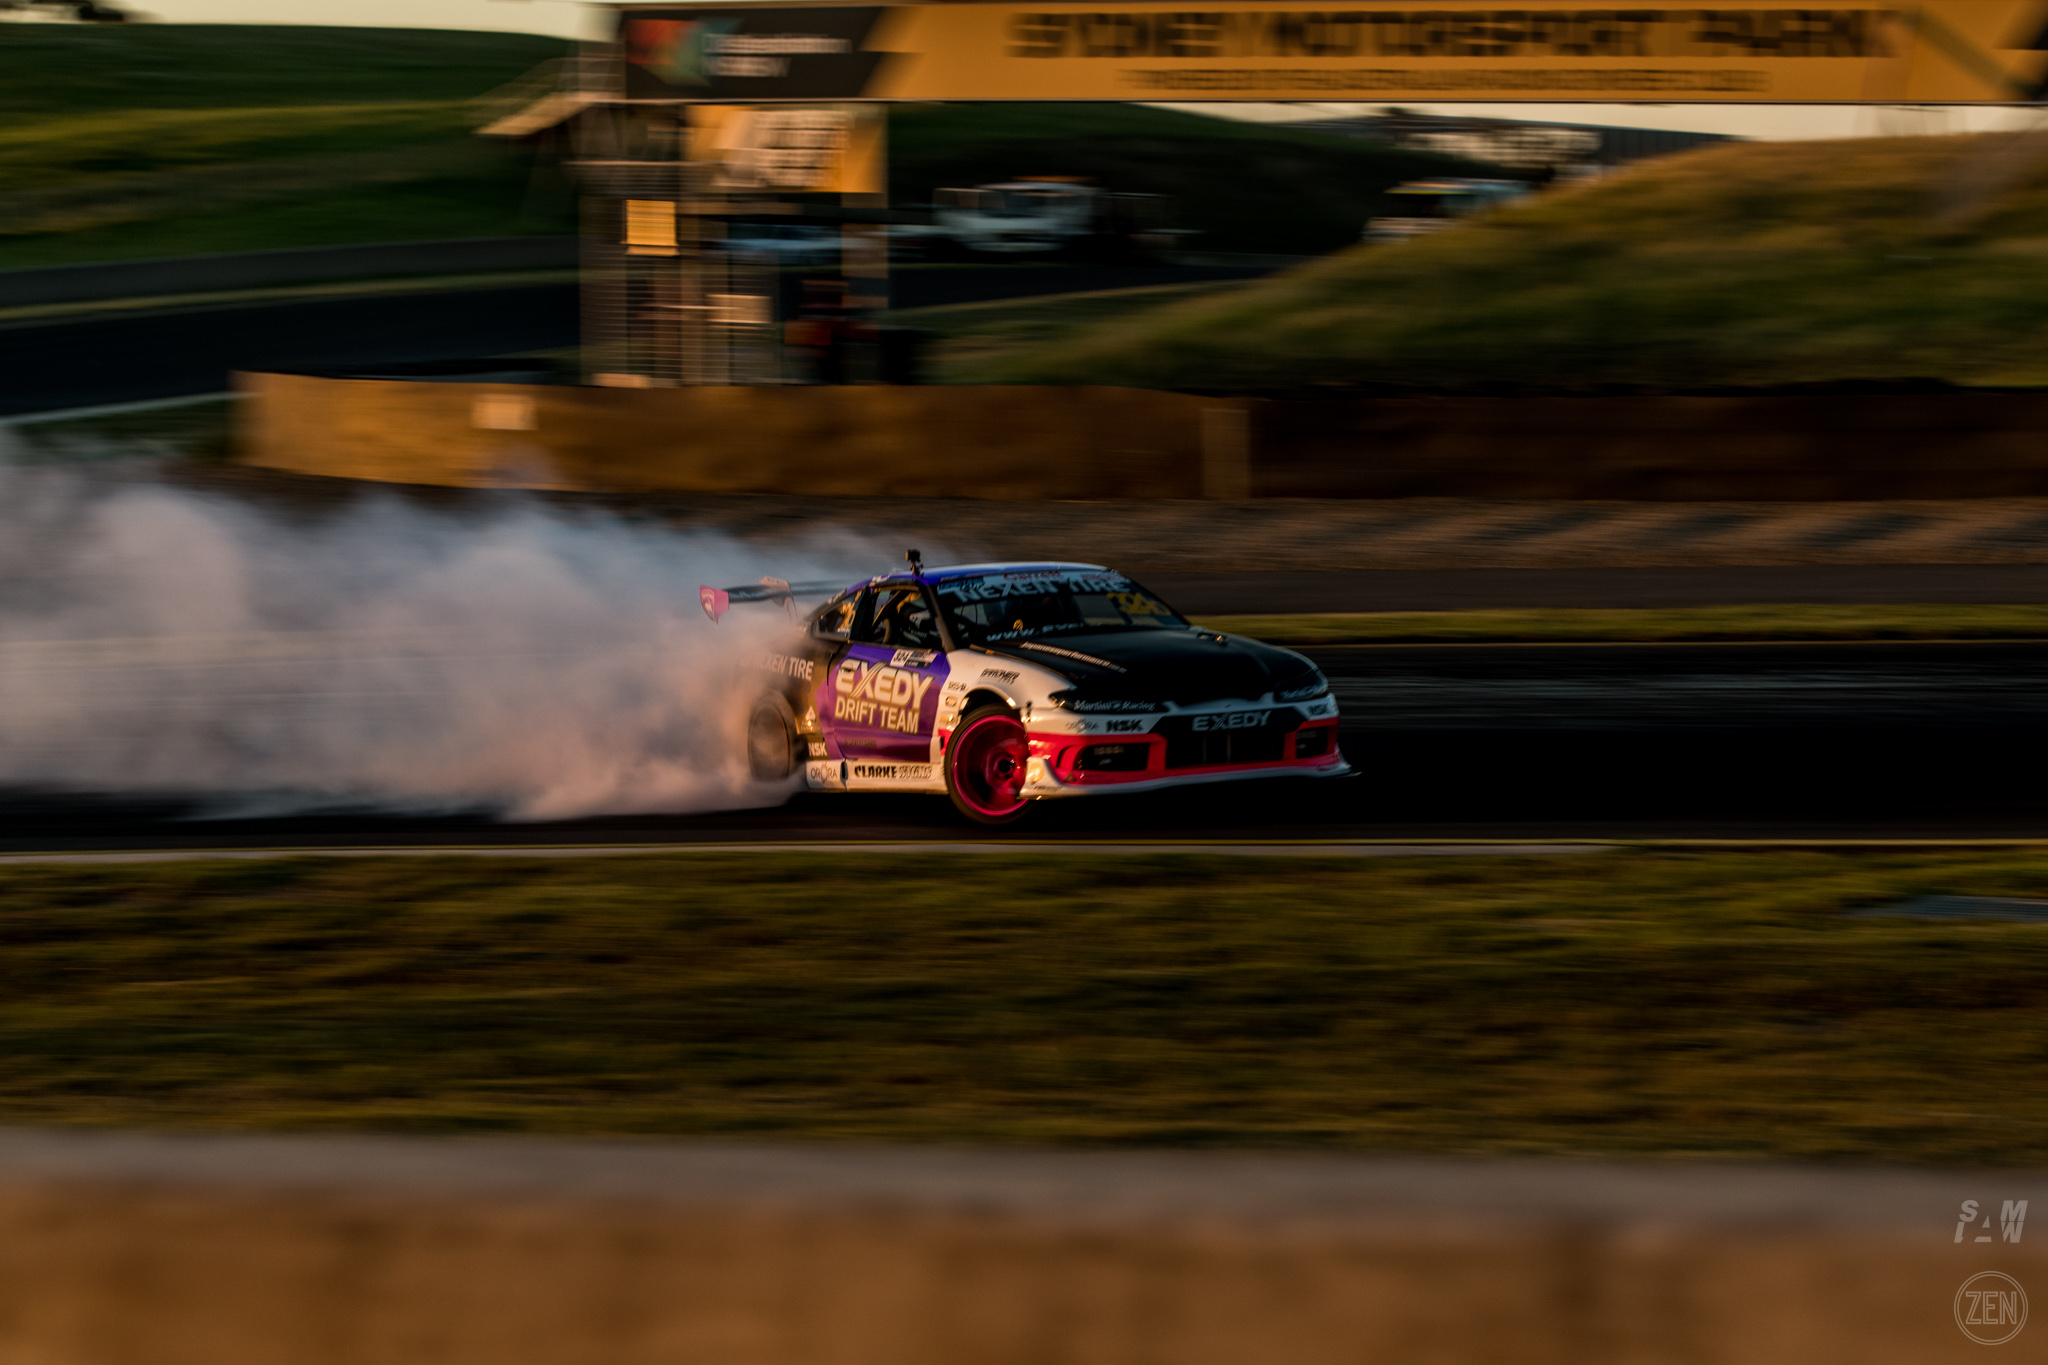 2019-10-18 - WTAC Day 01 068